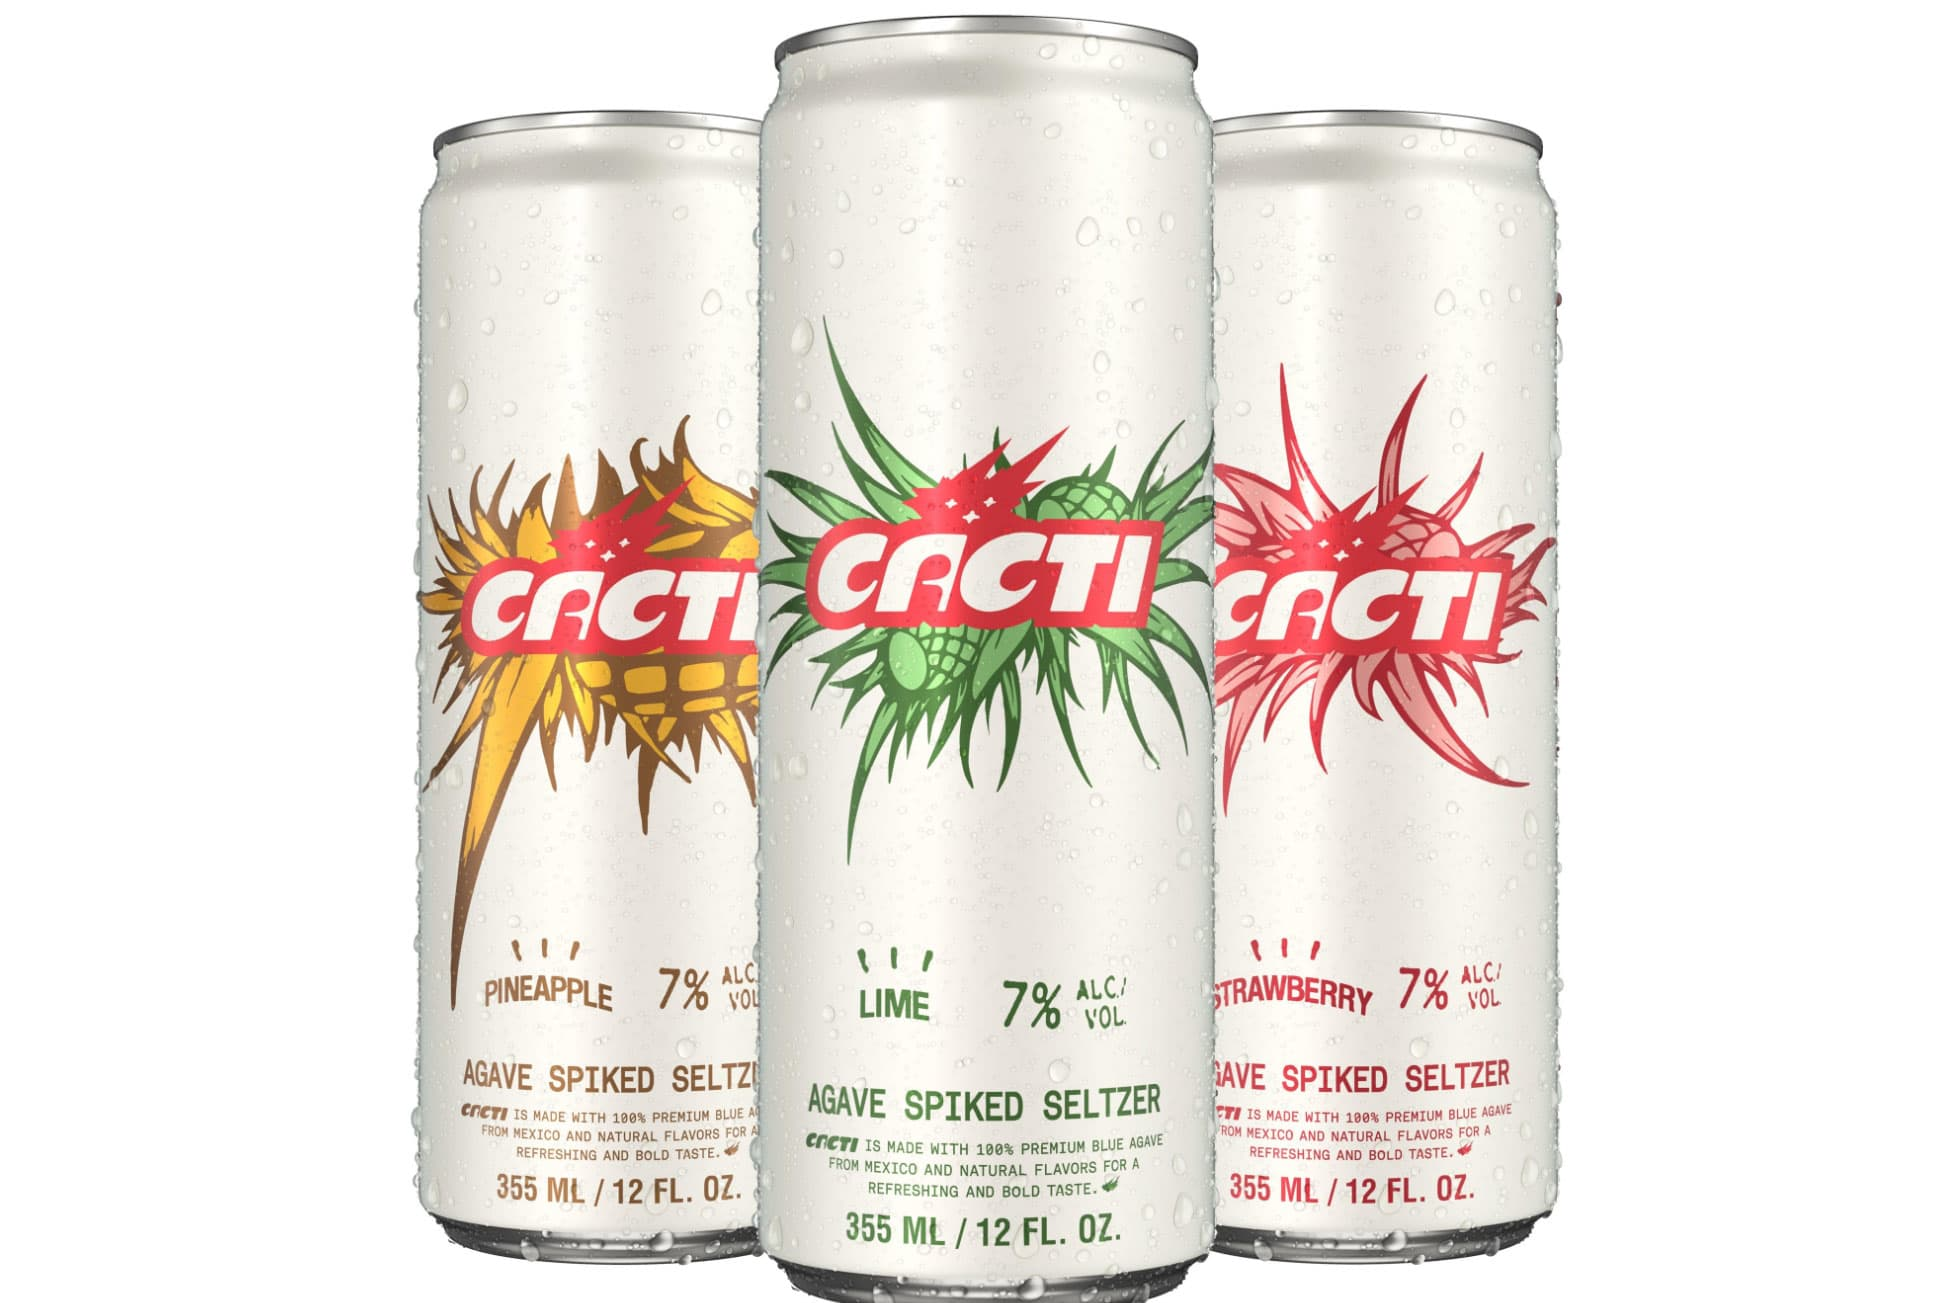 Anheuser-Busch CEO on success of Travis Scott-backed Cacti hard seltzer